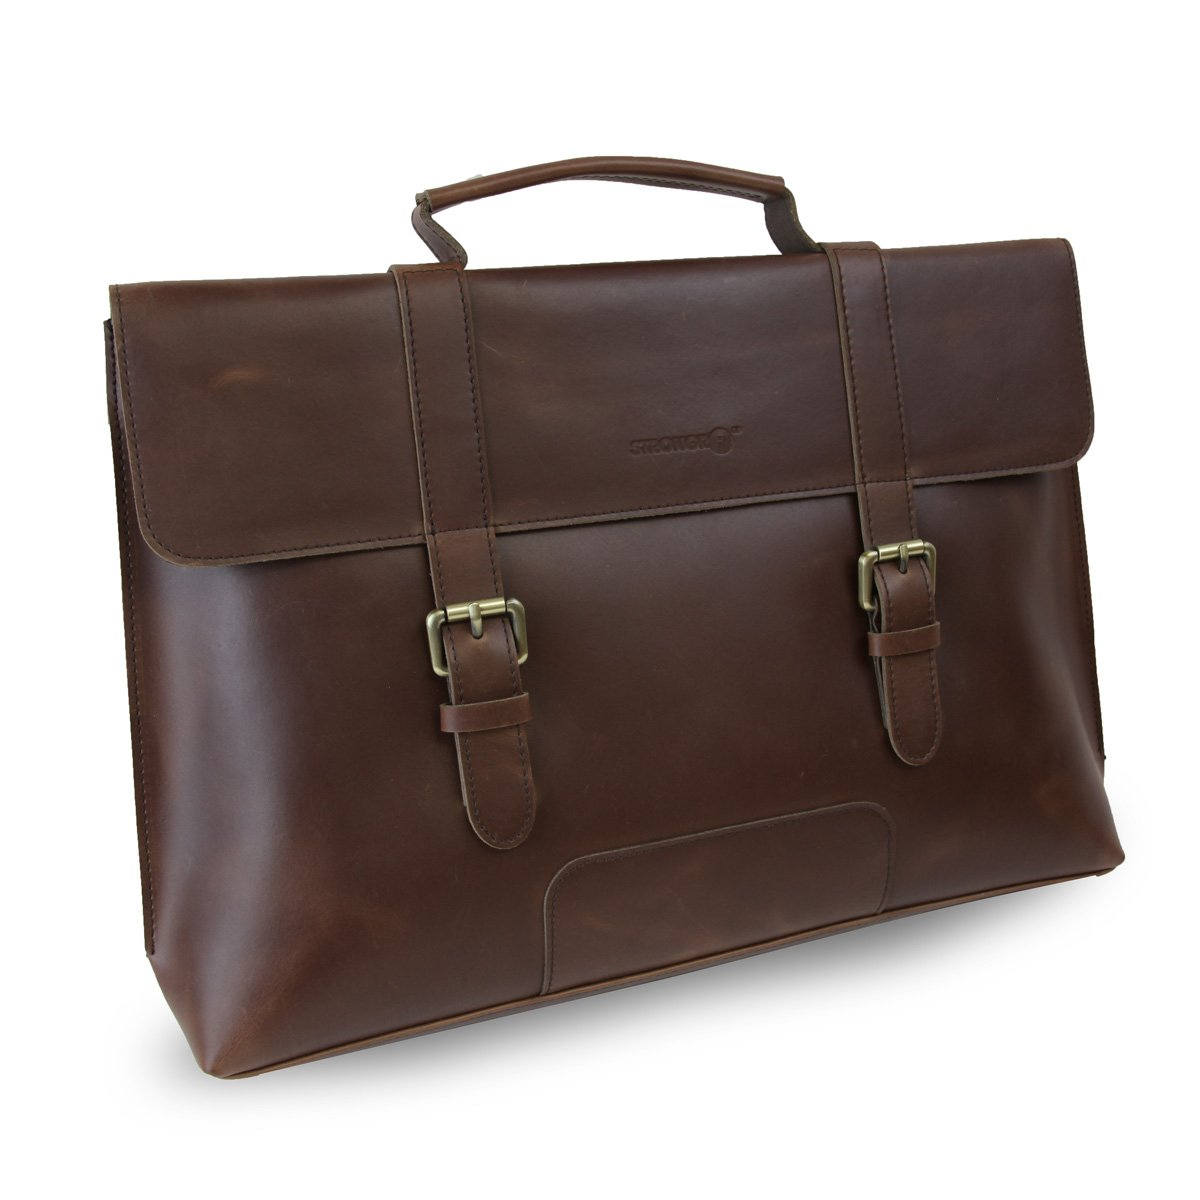 LB1 High Performance Leather Unisex Business Messenger Bag Briefcase Bag for Administrative Accounting Assistant (Brown)